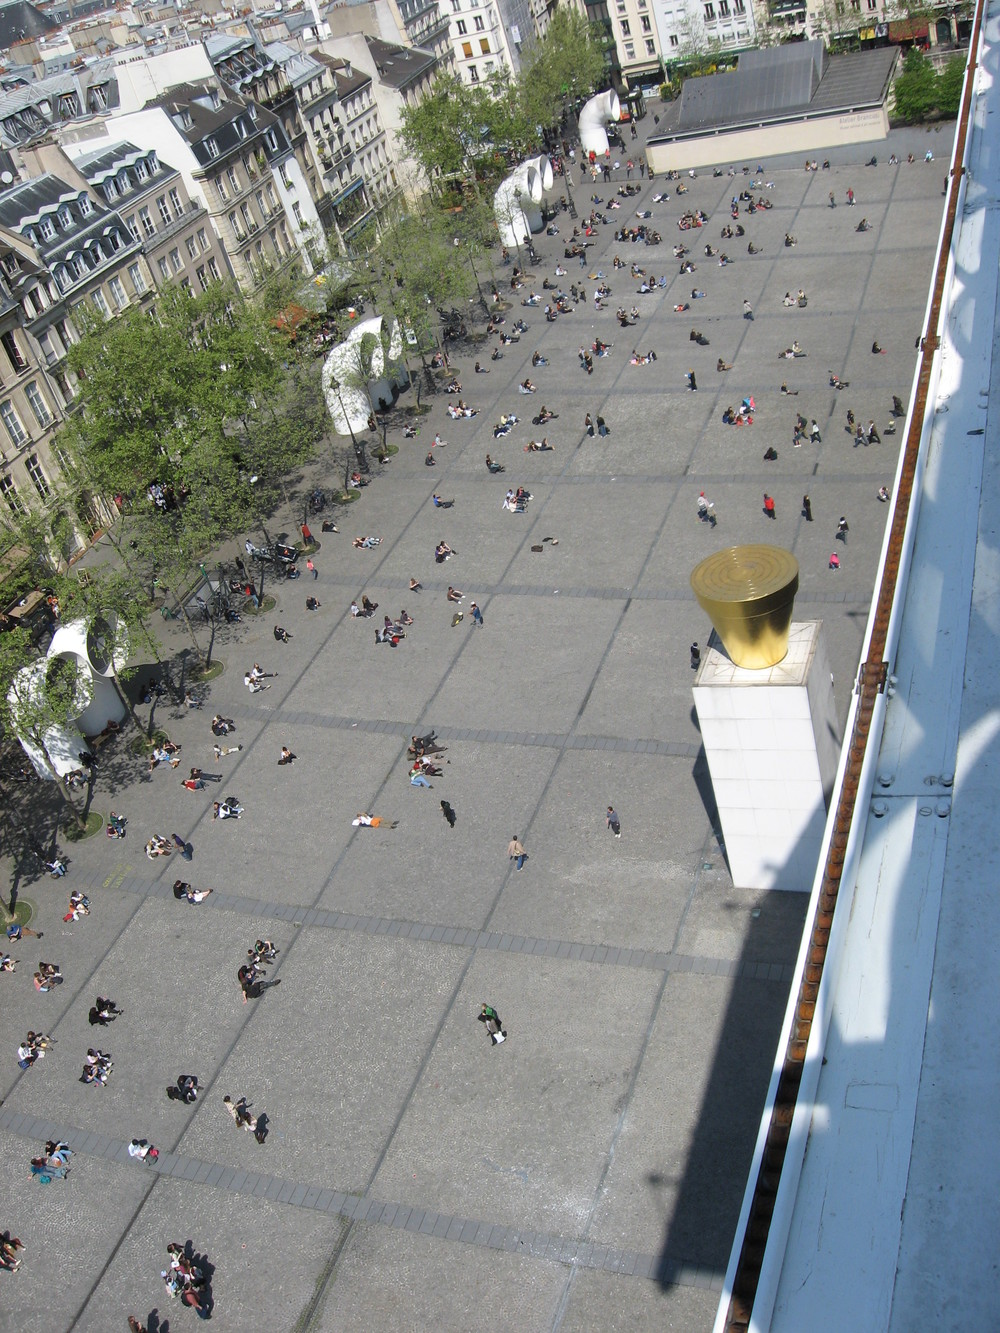 This is the plaza outside of Centre Pompidou in Paris. Again just a flat open space.There are some trees on the edge but they are deciduous which allow people to see into and out of the plaza.  One the best plaza activities is people watching - people attract people.